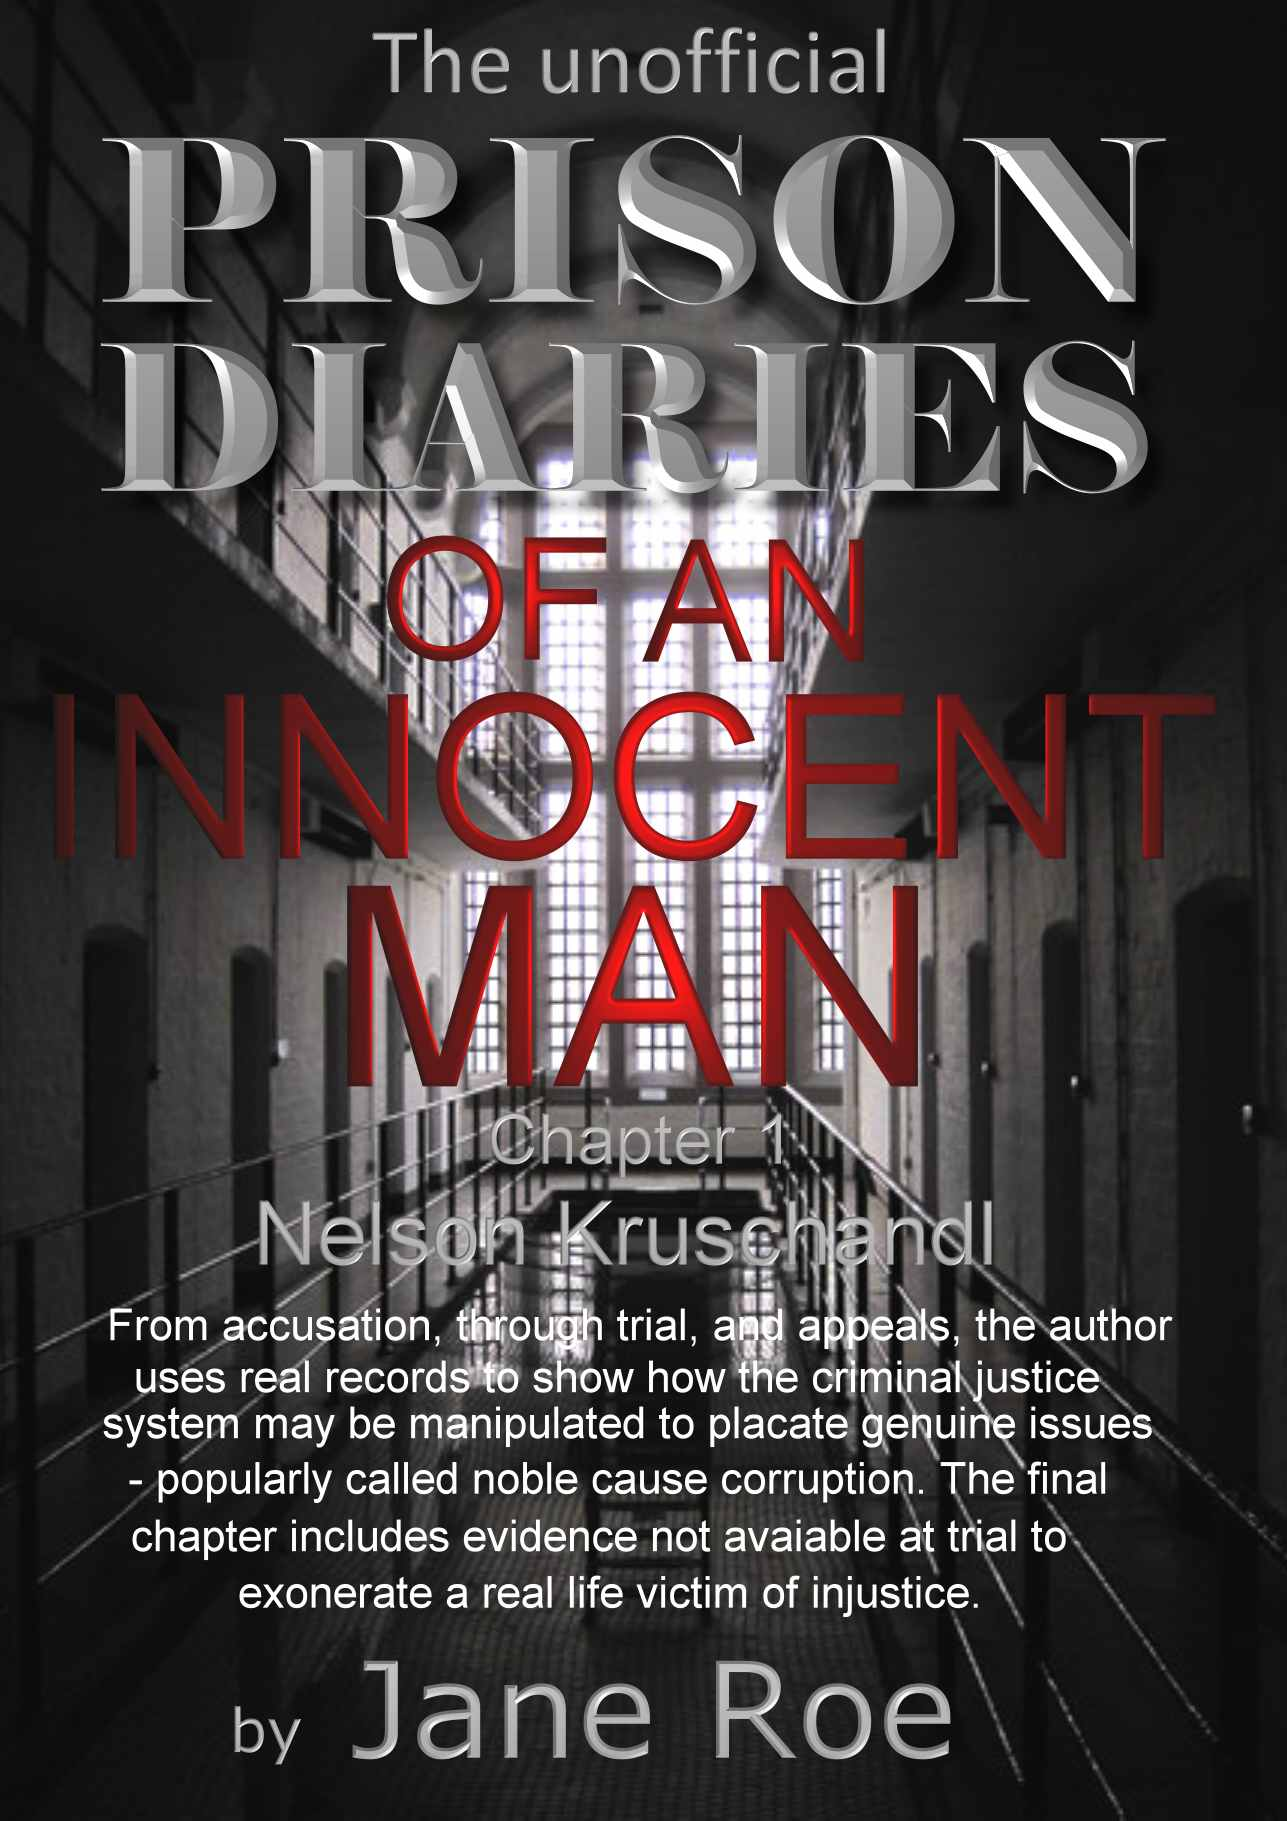 Prison Diaries, Chapter one, Crucifixion, Nelson Kruschandl - An Innocent Man